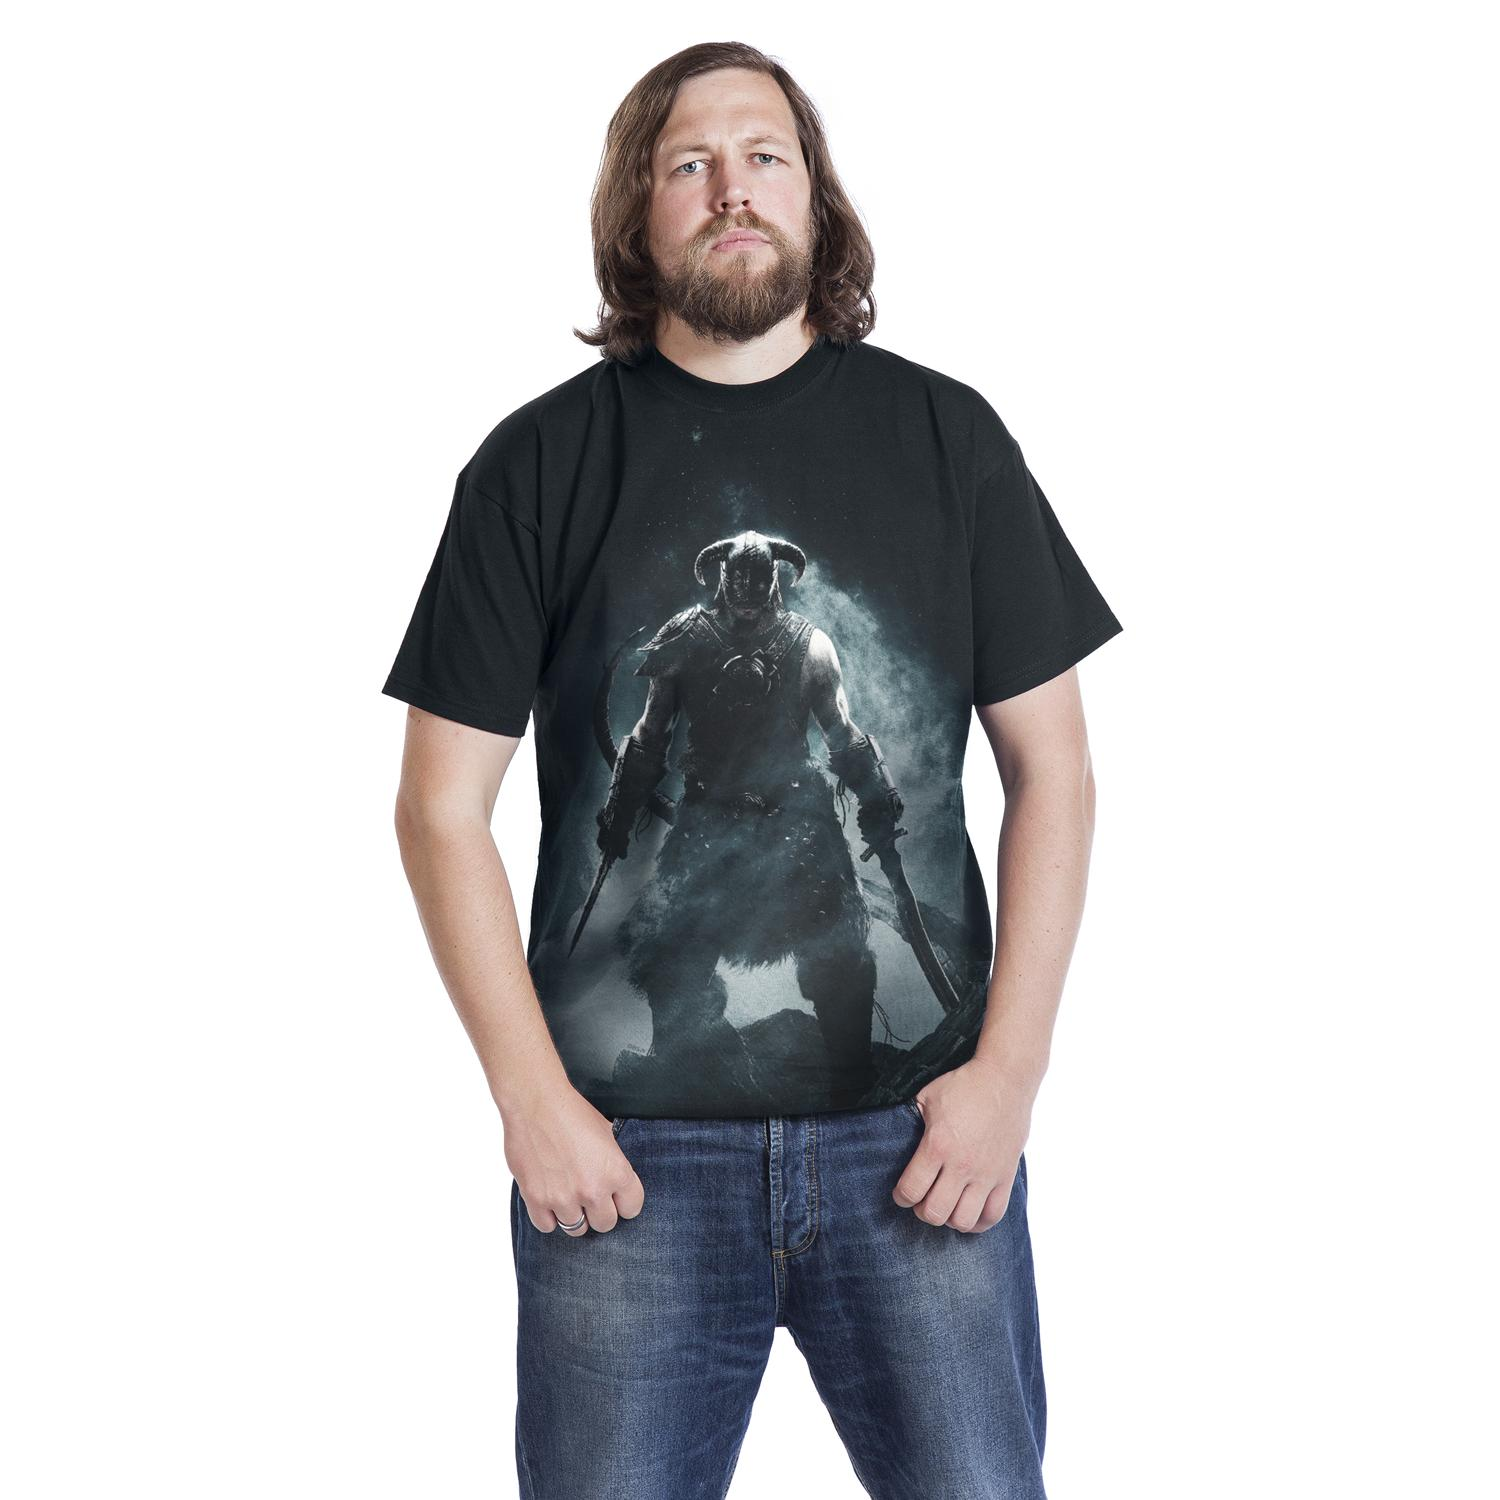 v-skyrim-dragonborn-t-shirt-design-man